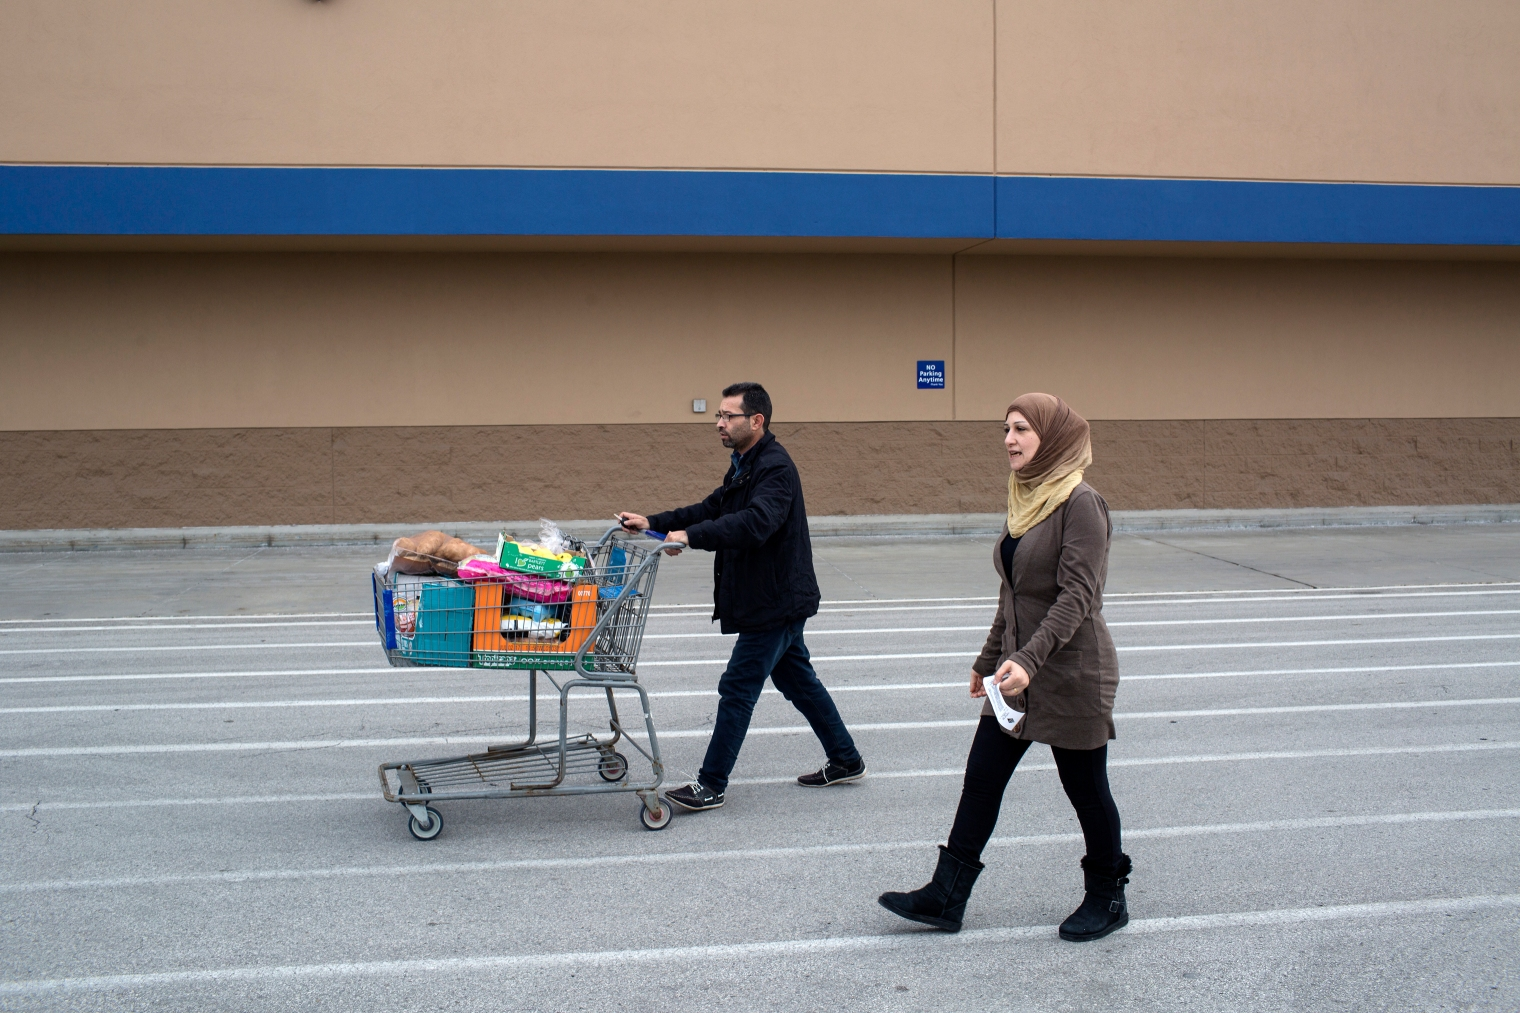 Abdul Fattah Tameem and his wife, Ghazweh Aljabooli, leave the store after shopping for their family. The parents of five moved their family to West Des Moines, a suburb of Des Moines, Iowa.